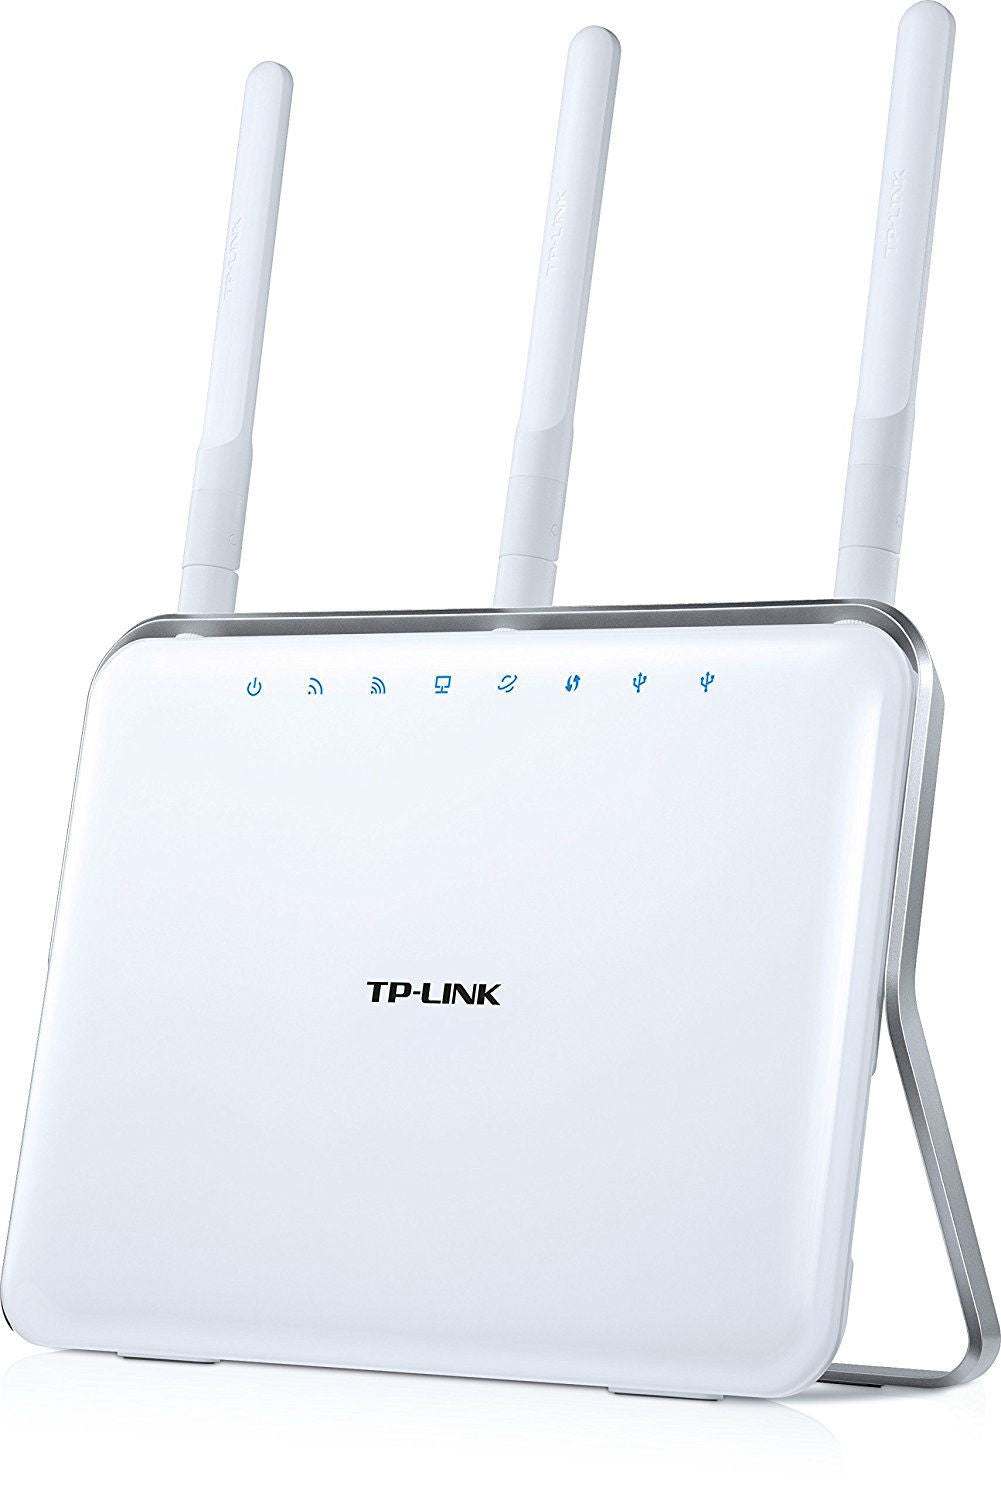 AC1900-Wireless-Dual-Band-Gigabit-Router